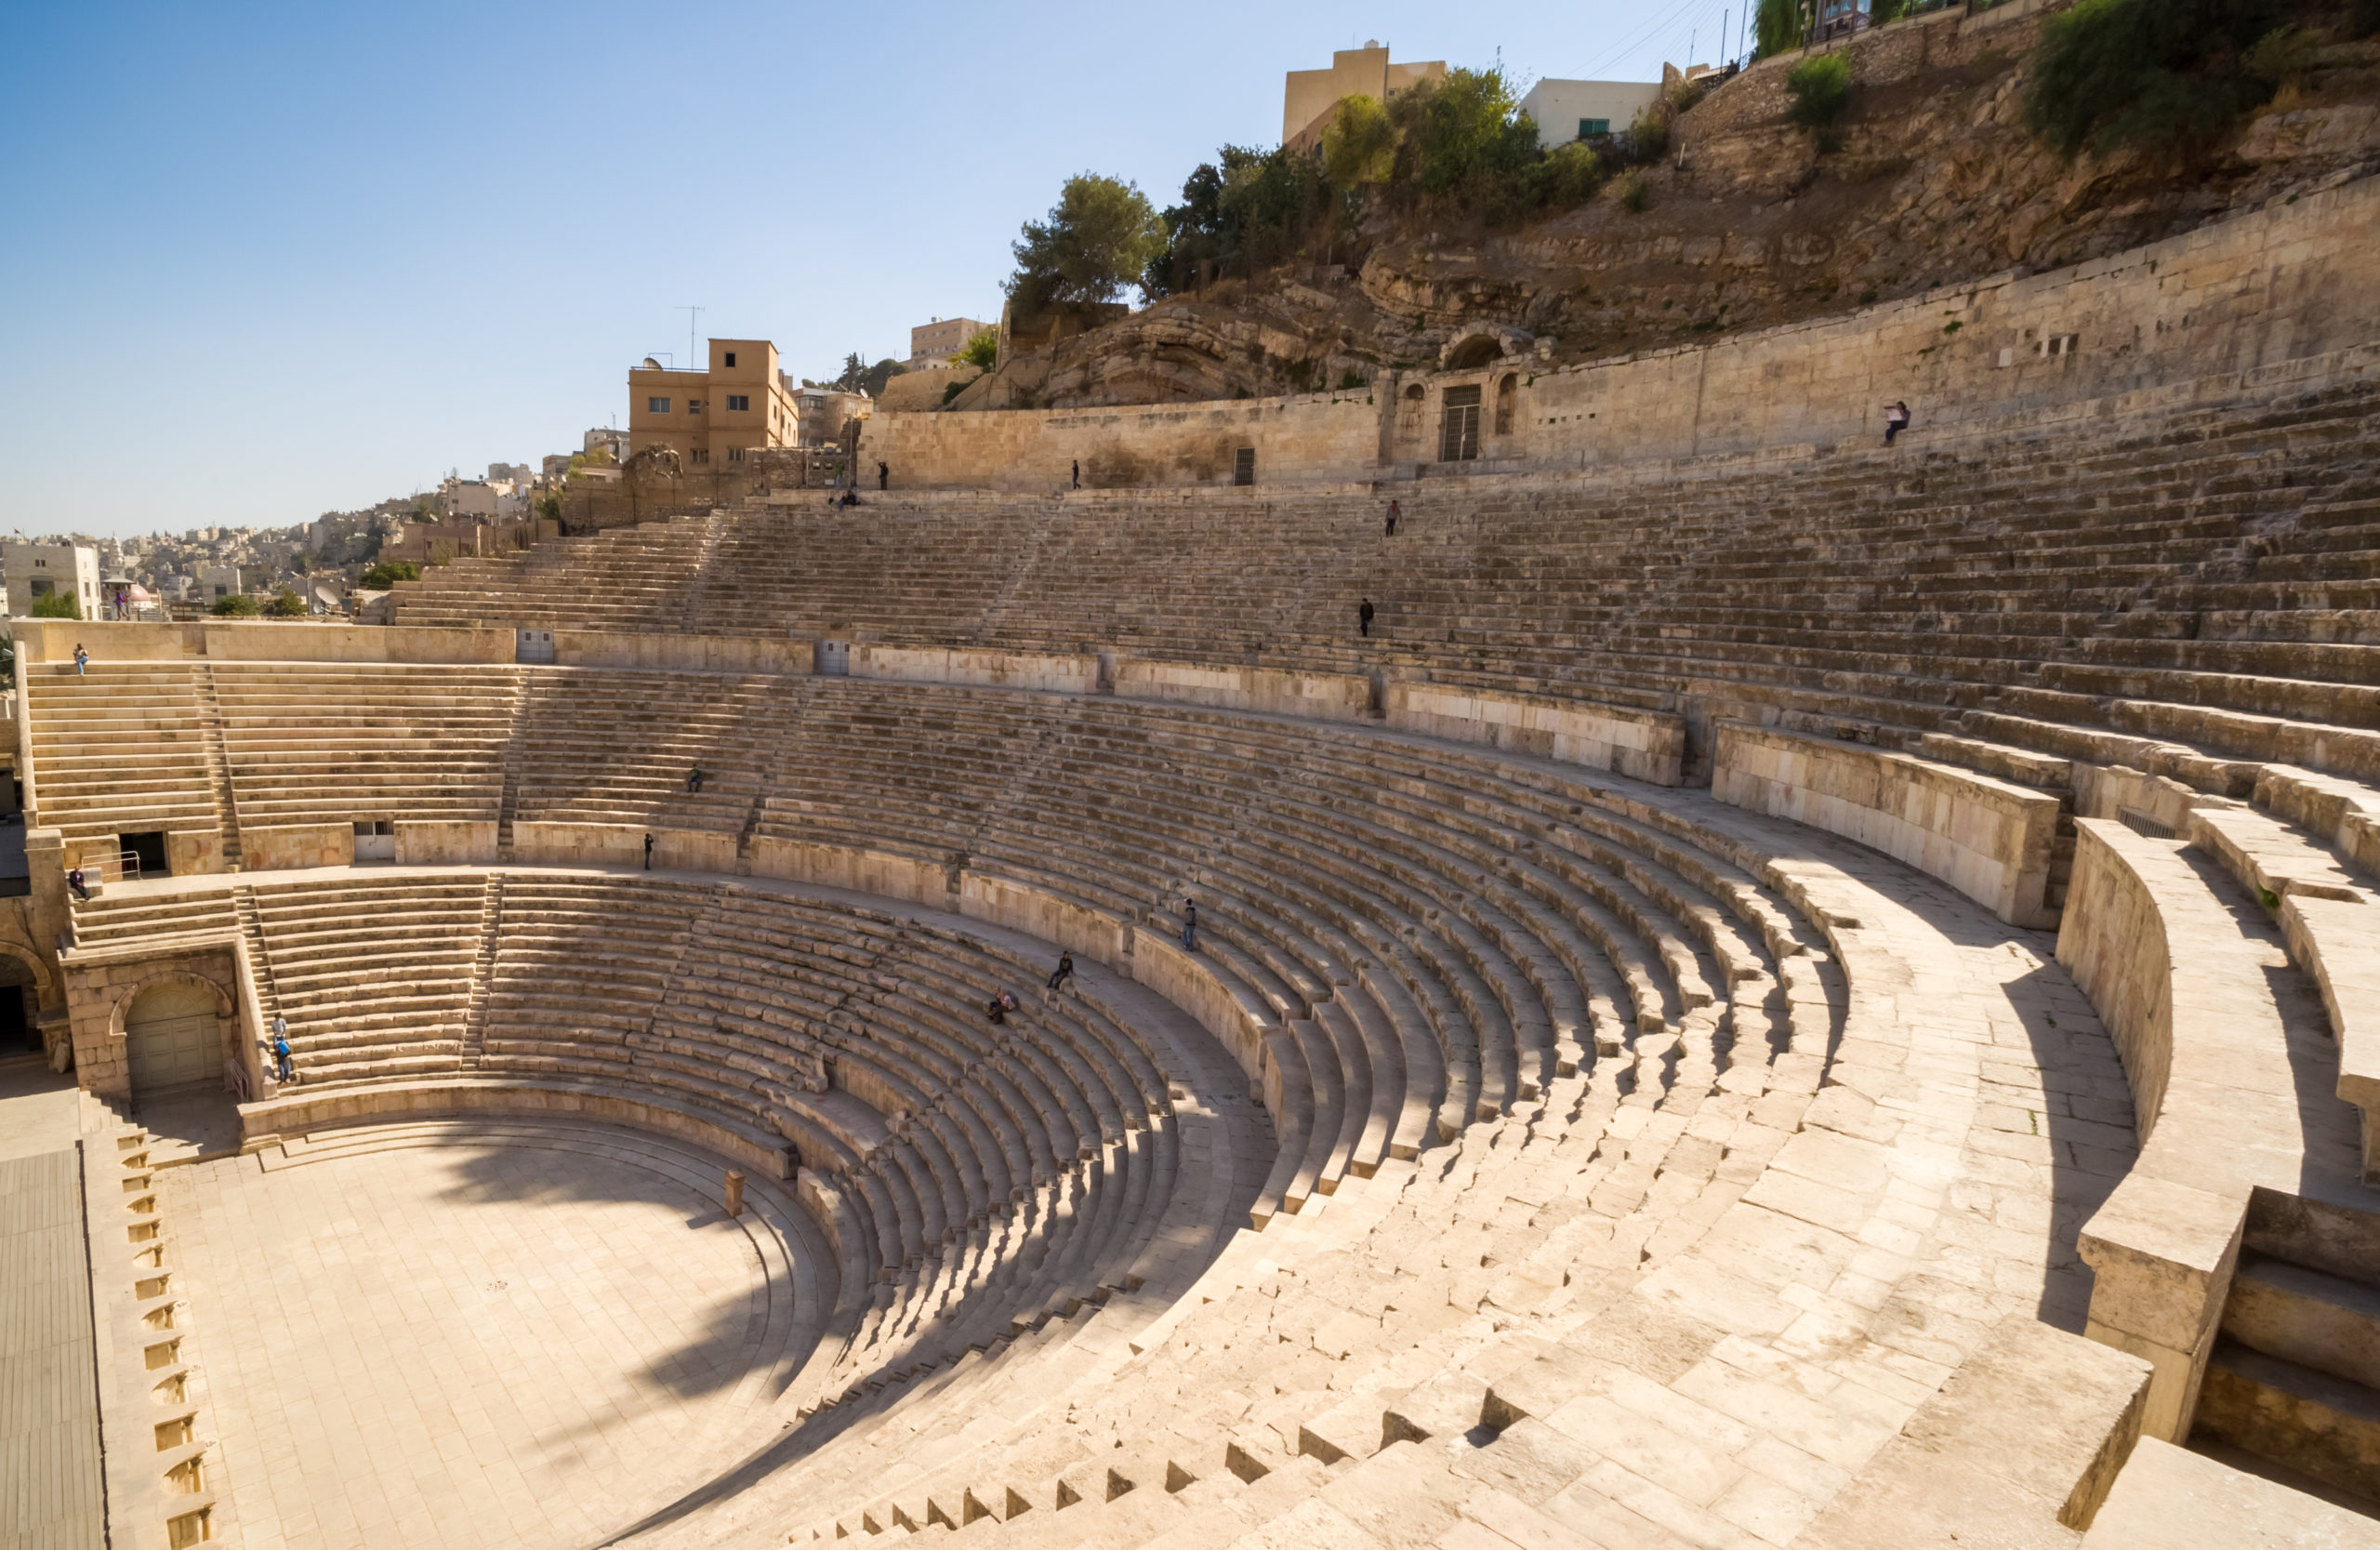 This magnificently restored theatre is the most impressive Roman ruins Amman has to offer. Read this article and you will see why